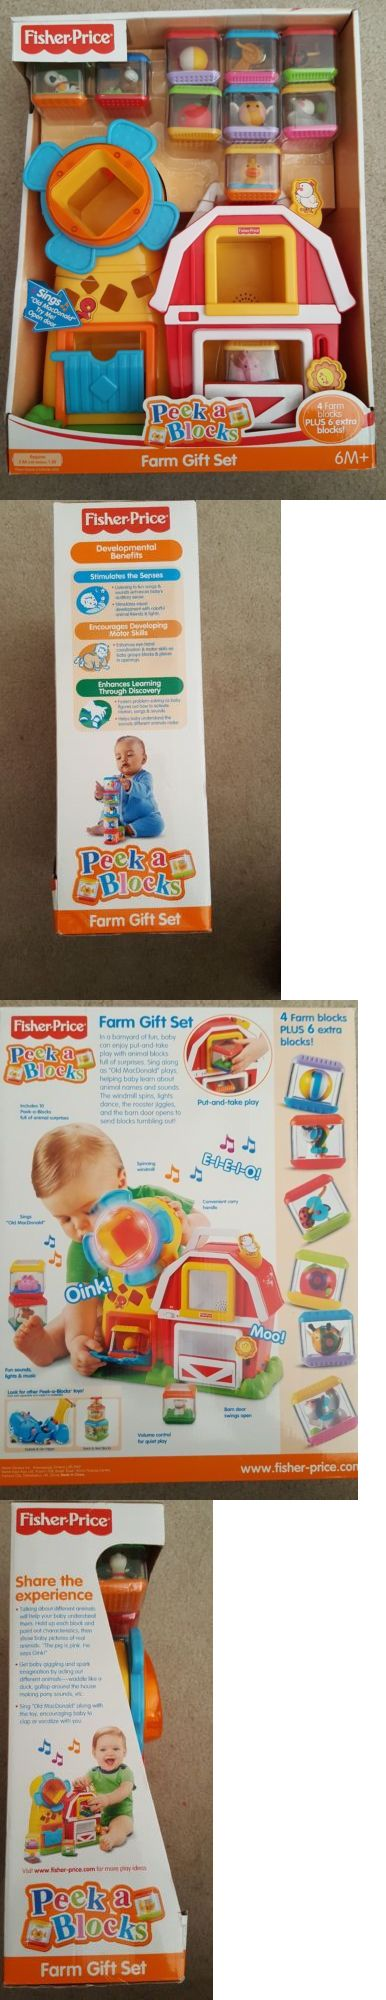 Peek A Blocks 168217: Fisher Price Peek A Blocks Farm Gift Set - New In Box - -> BUY IT NOW ONLY: $75 on eBay!